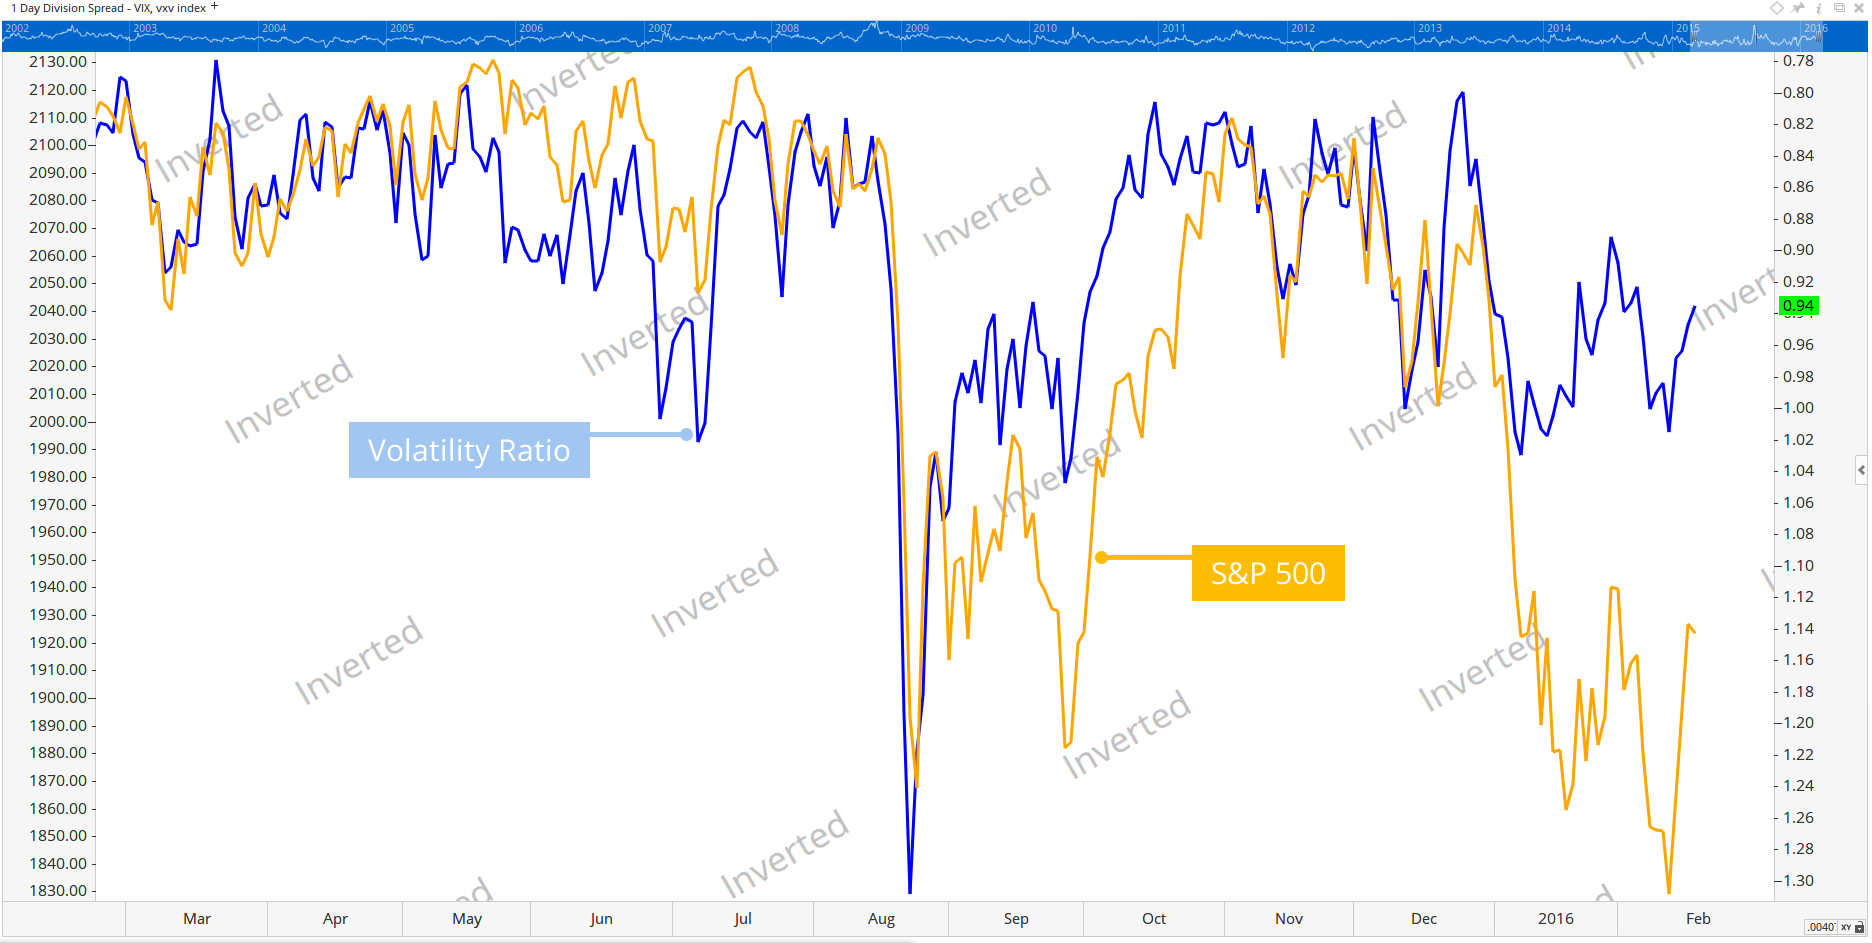 S&P 500 over its Volatility Ratio Inverted